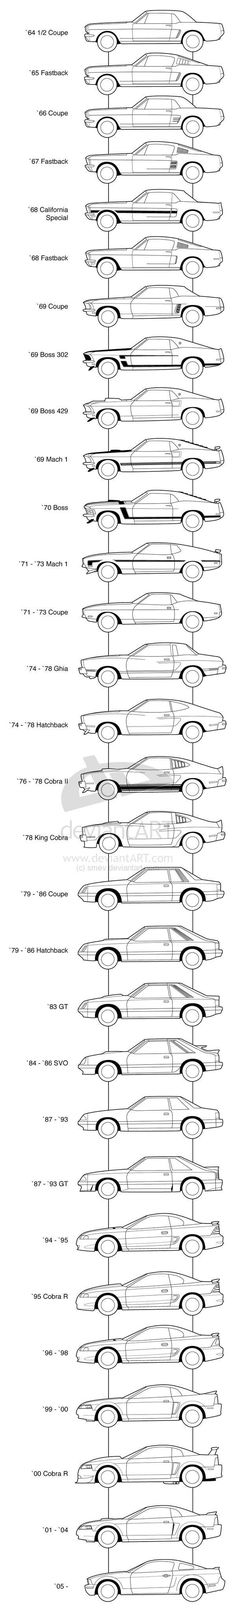 Cars Discover Mustang Guide by smev on DeviantArt Mustang Cobra, Mustang Fastback, Ford Mustang Gt, 2005 Mustang, Mustang Boss, Car Ford, Ford Trucks, Porsche Cayman 987, Classic Mustang